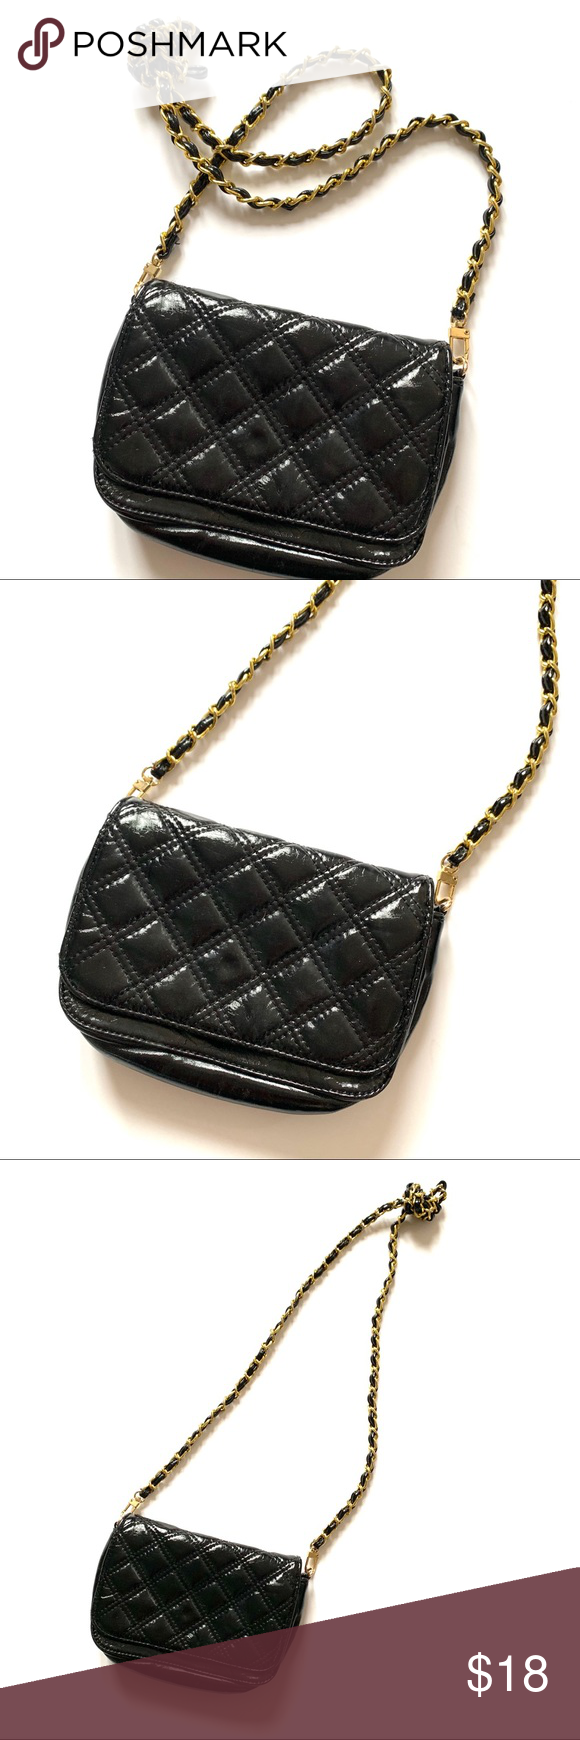 de8251e2bf Quilted Black Gold Chain Big Buddha Small Purse Gold chain knotted crossbody  small purse. Quilted black purse. No lock / clasp on closure.